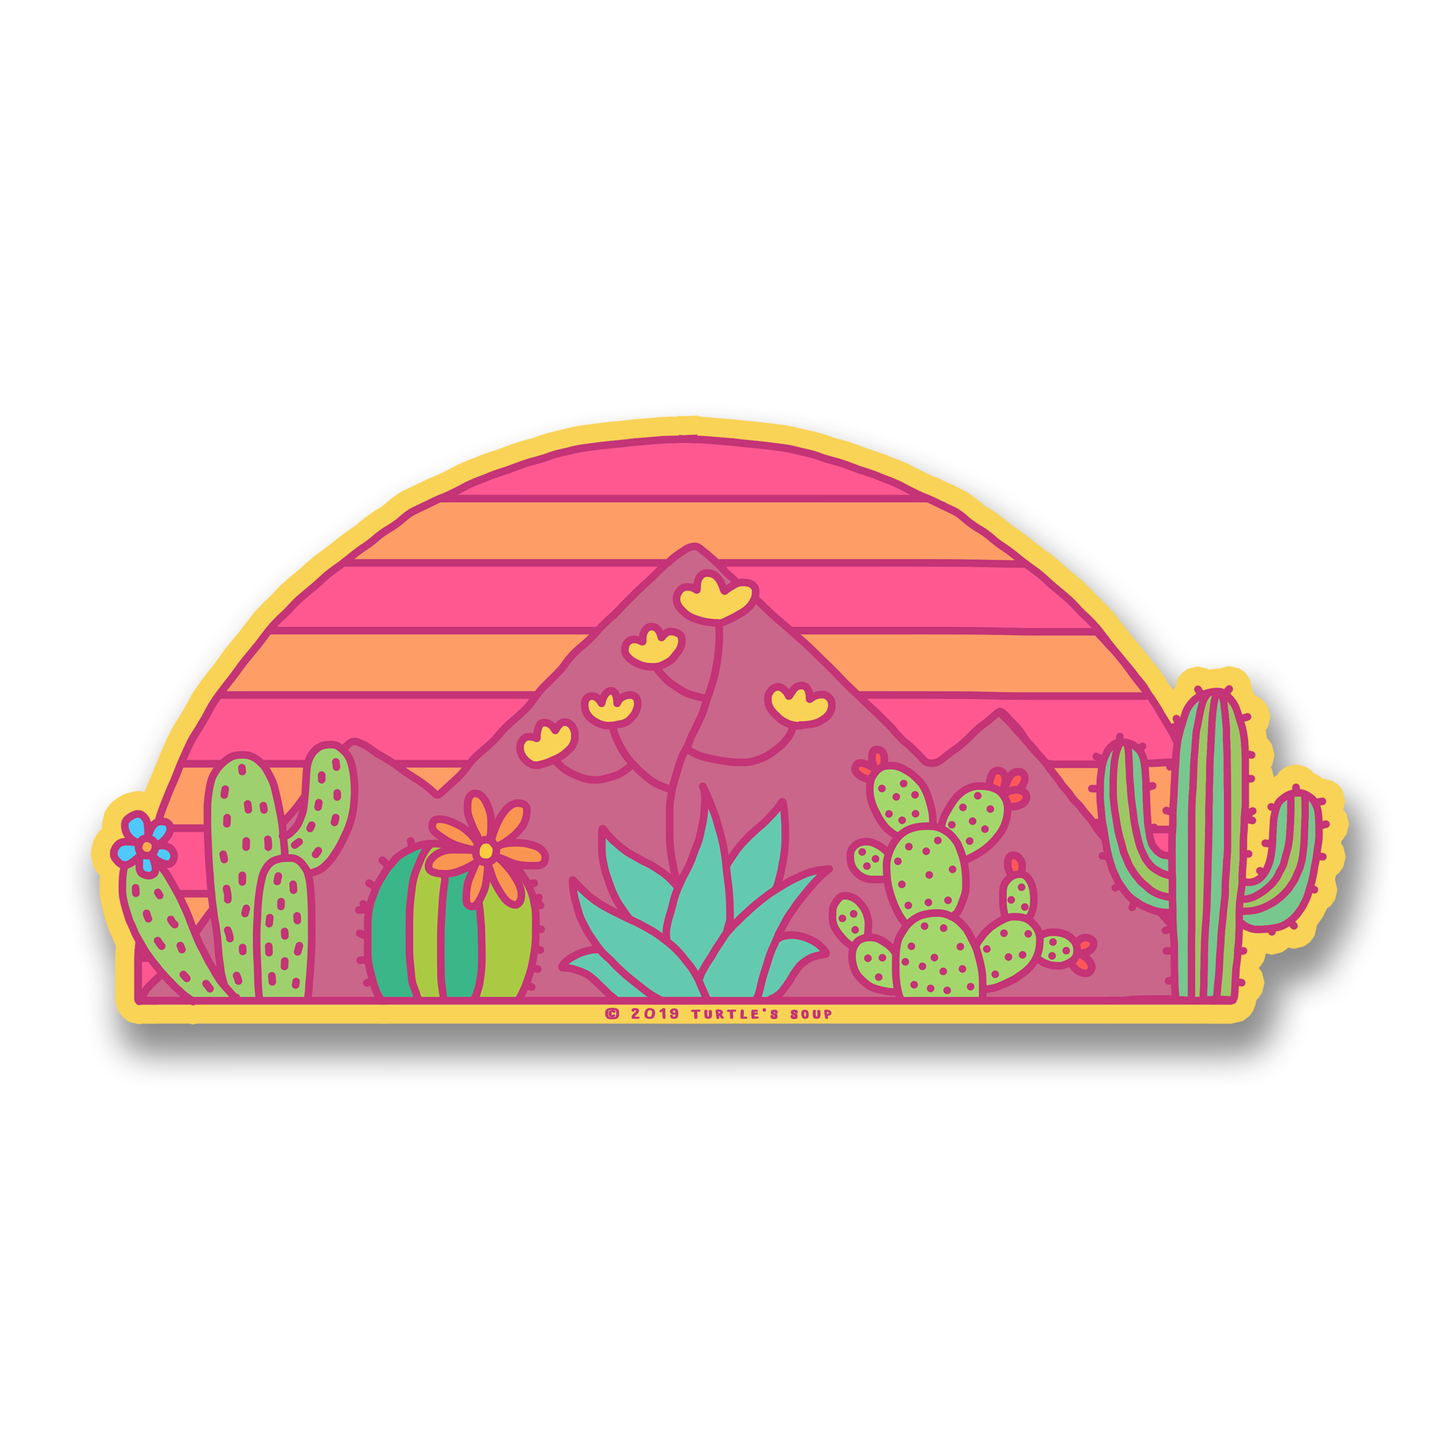 80s Desert Sunset Vinyl Sticker